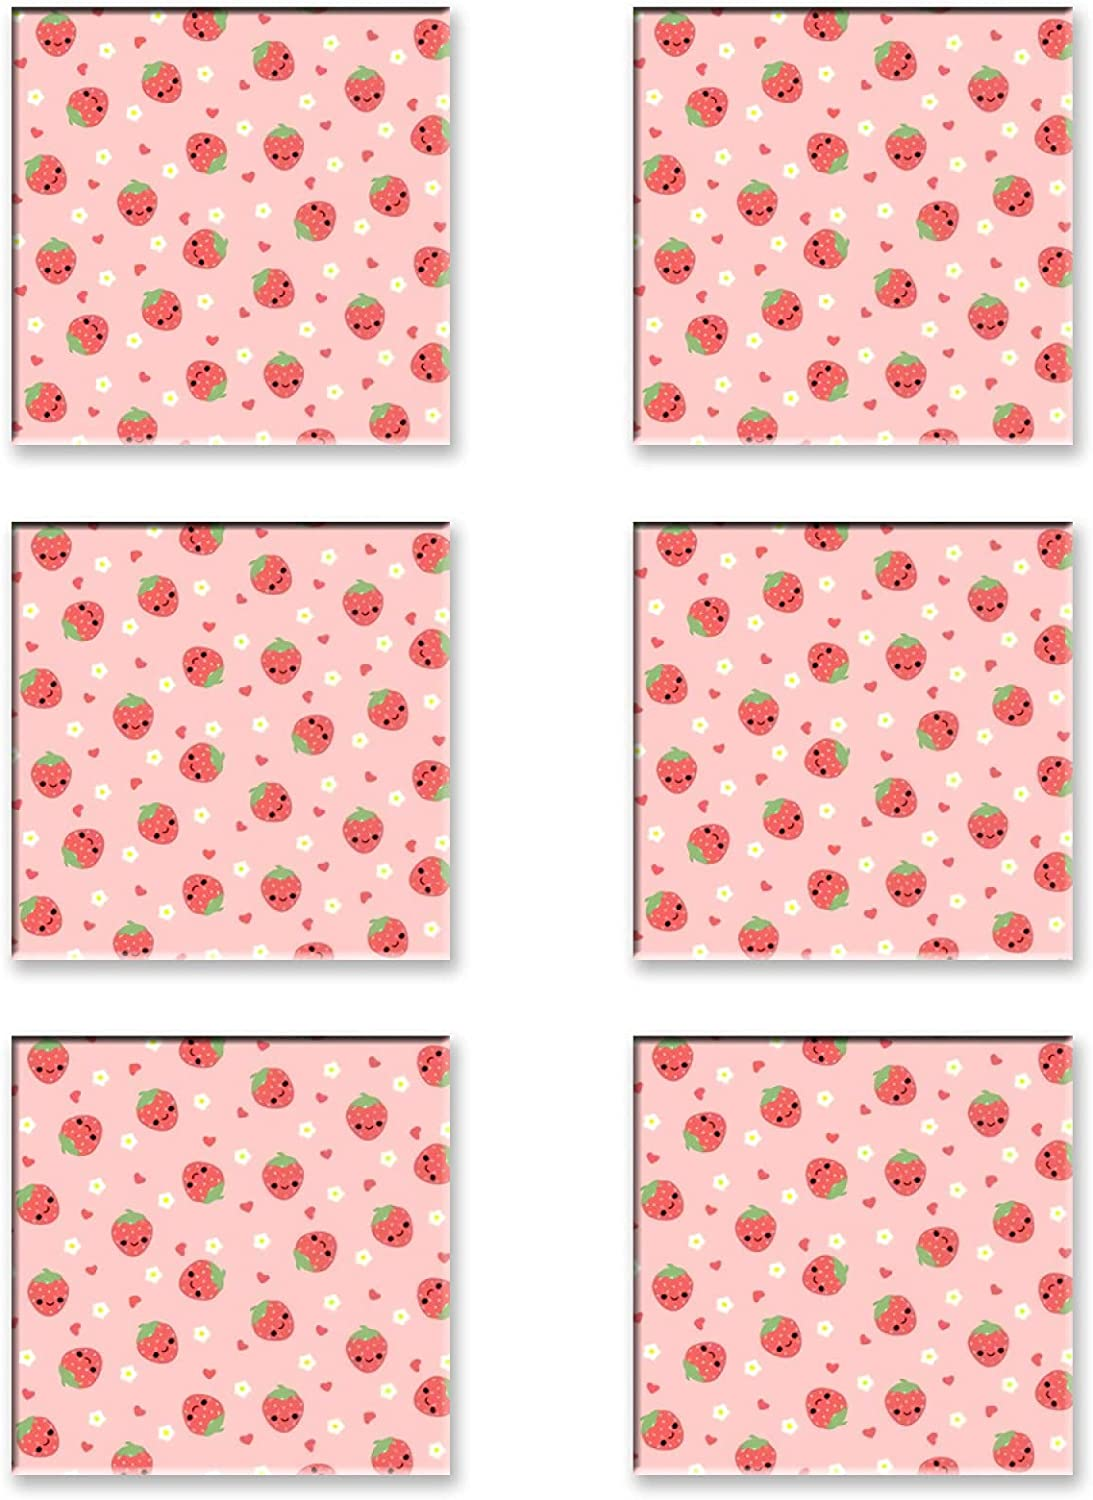 6 Pieces Square Drink Coaster shop Moisture 4inch Heat-Res All stores are sold Absorbing